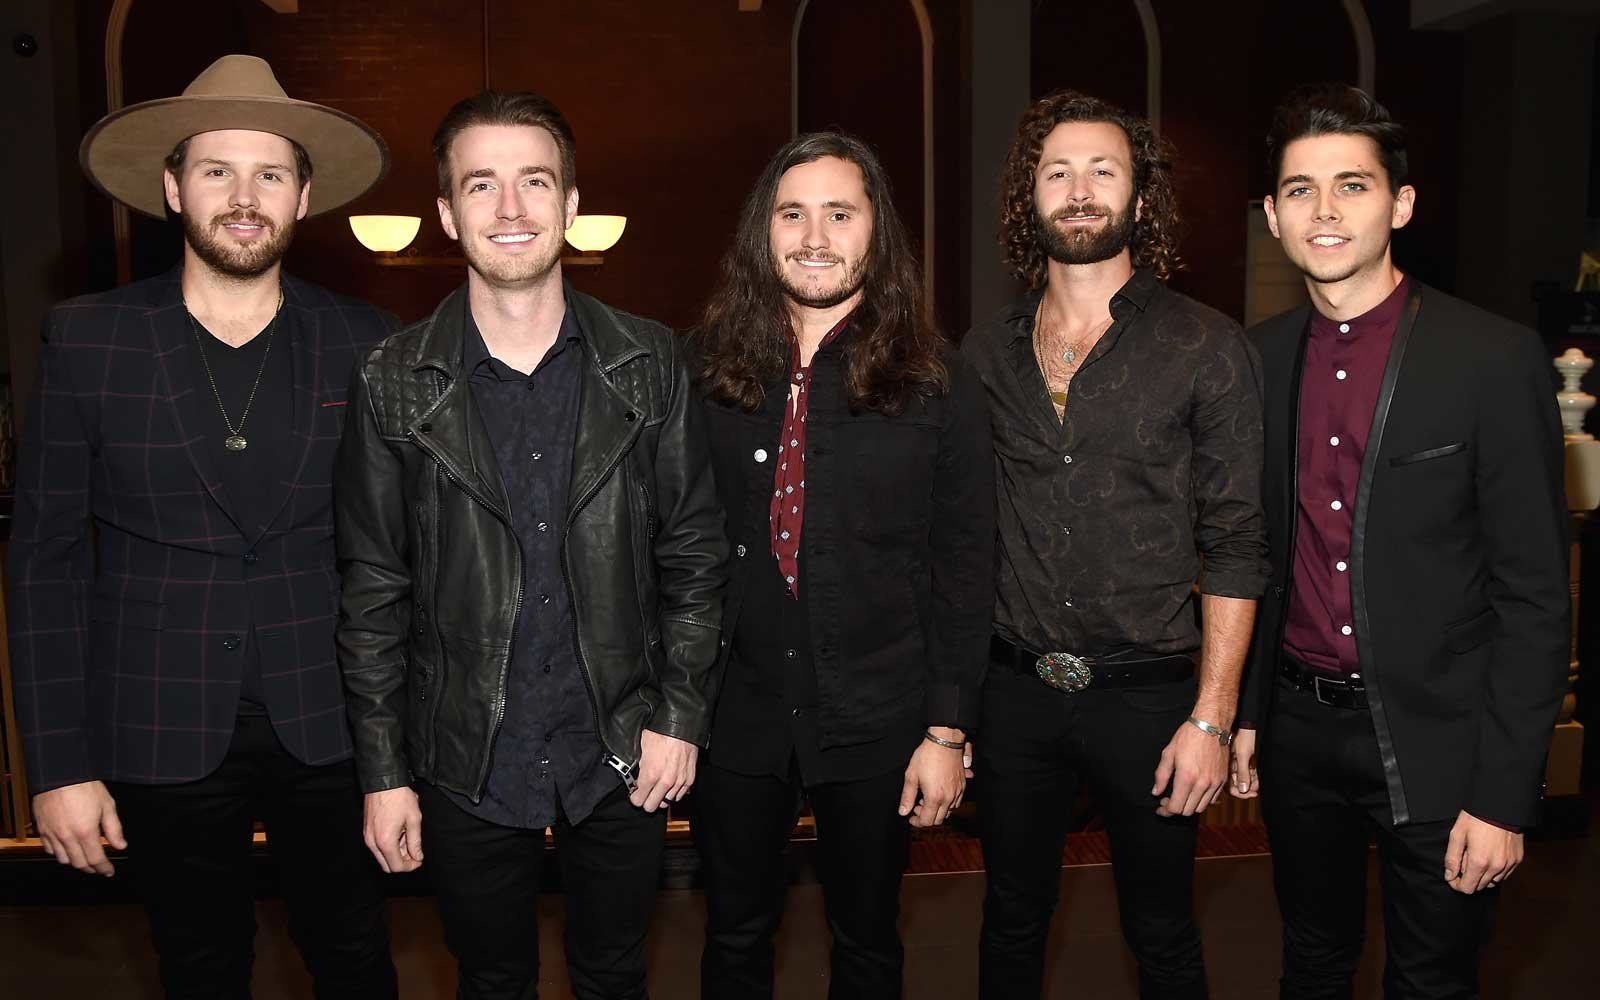 Musical group LANCO